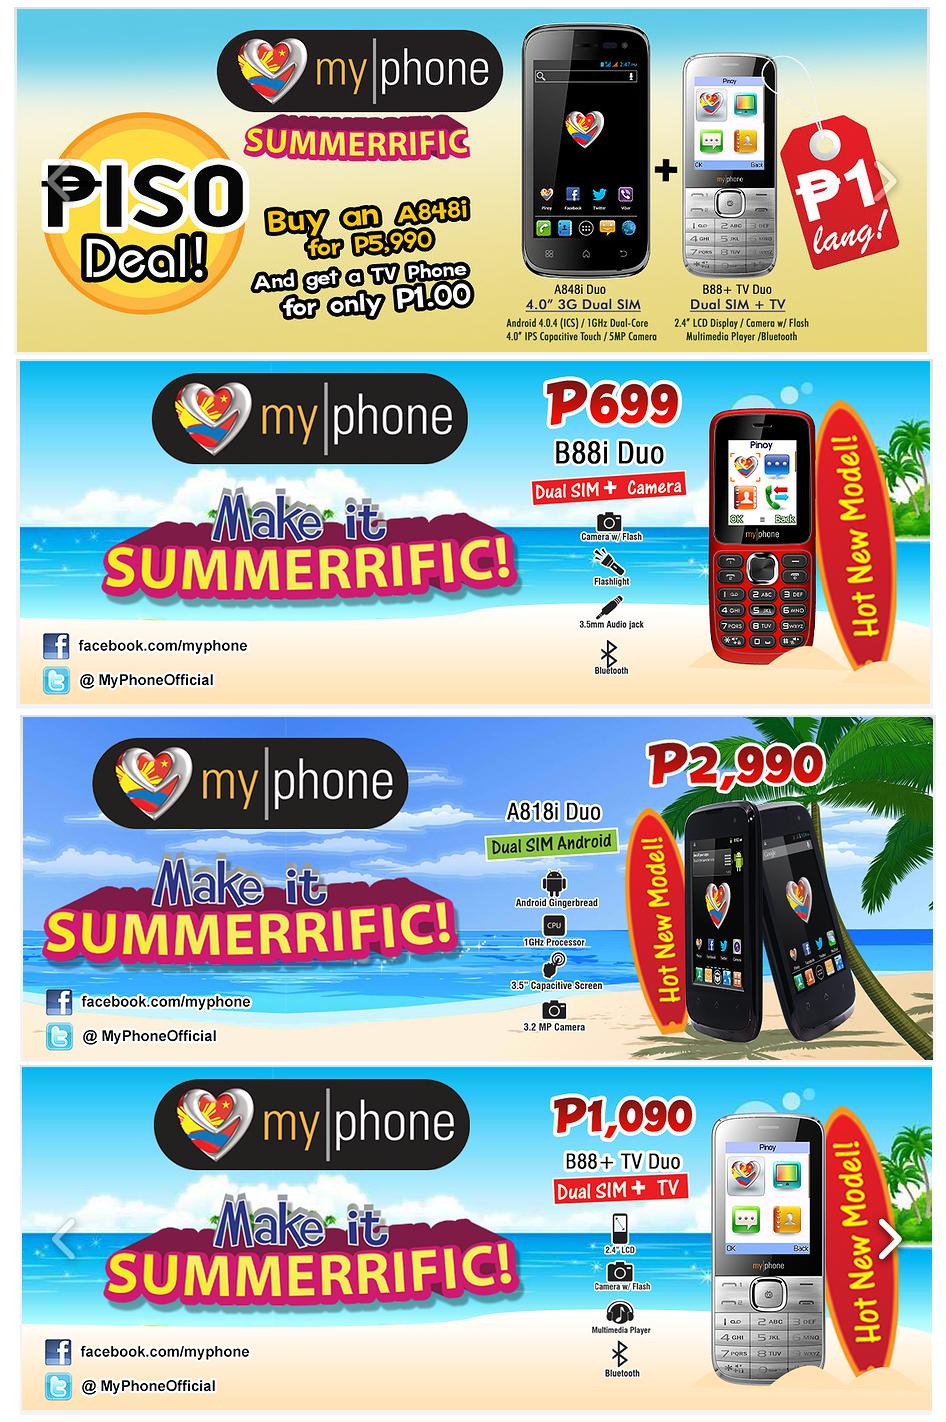 out the Myphone Promos, Available Nationwide! until April 30, 2013